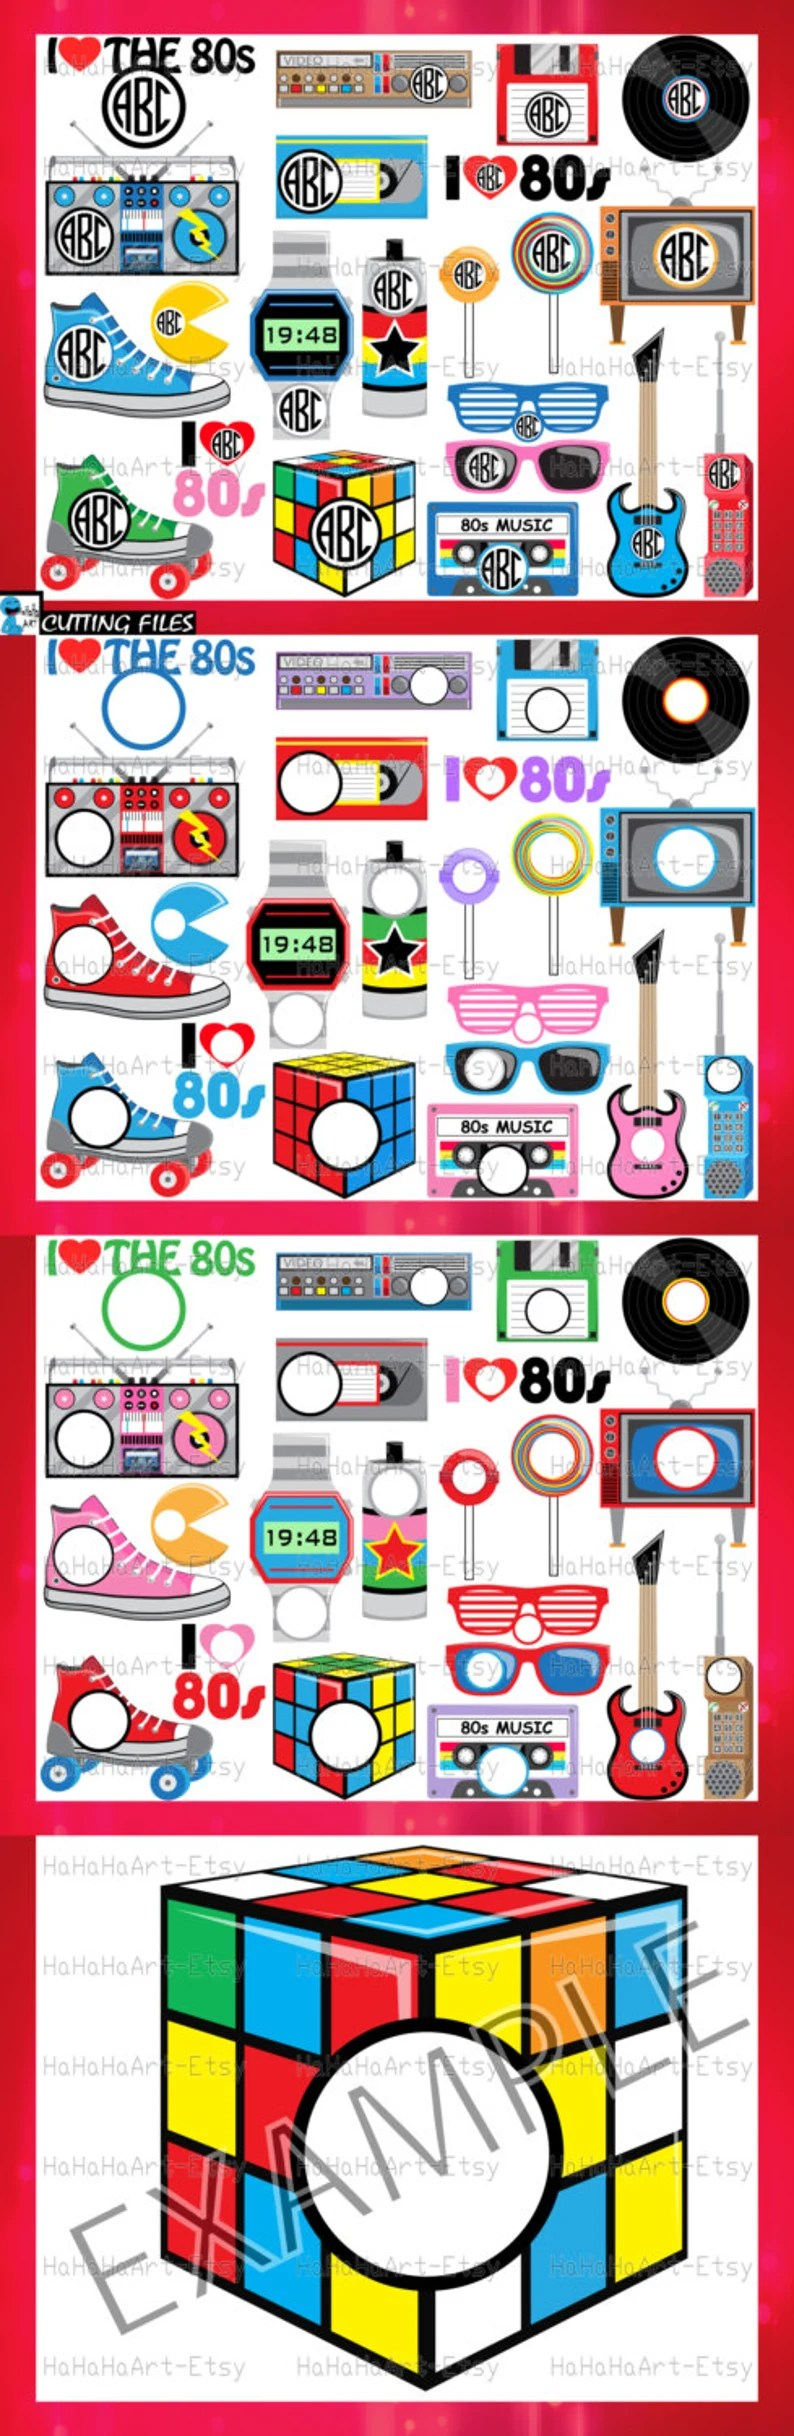 Download Circle 1980s I Love The 80s v2 Cutting Files Svg Png Jpg ...